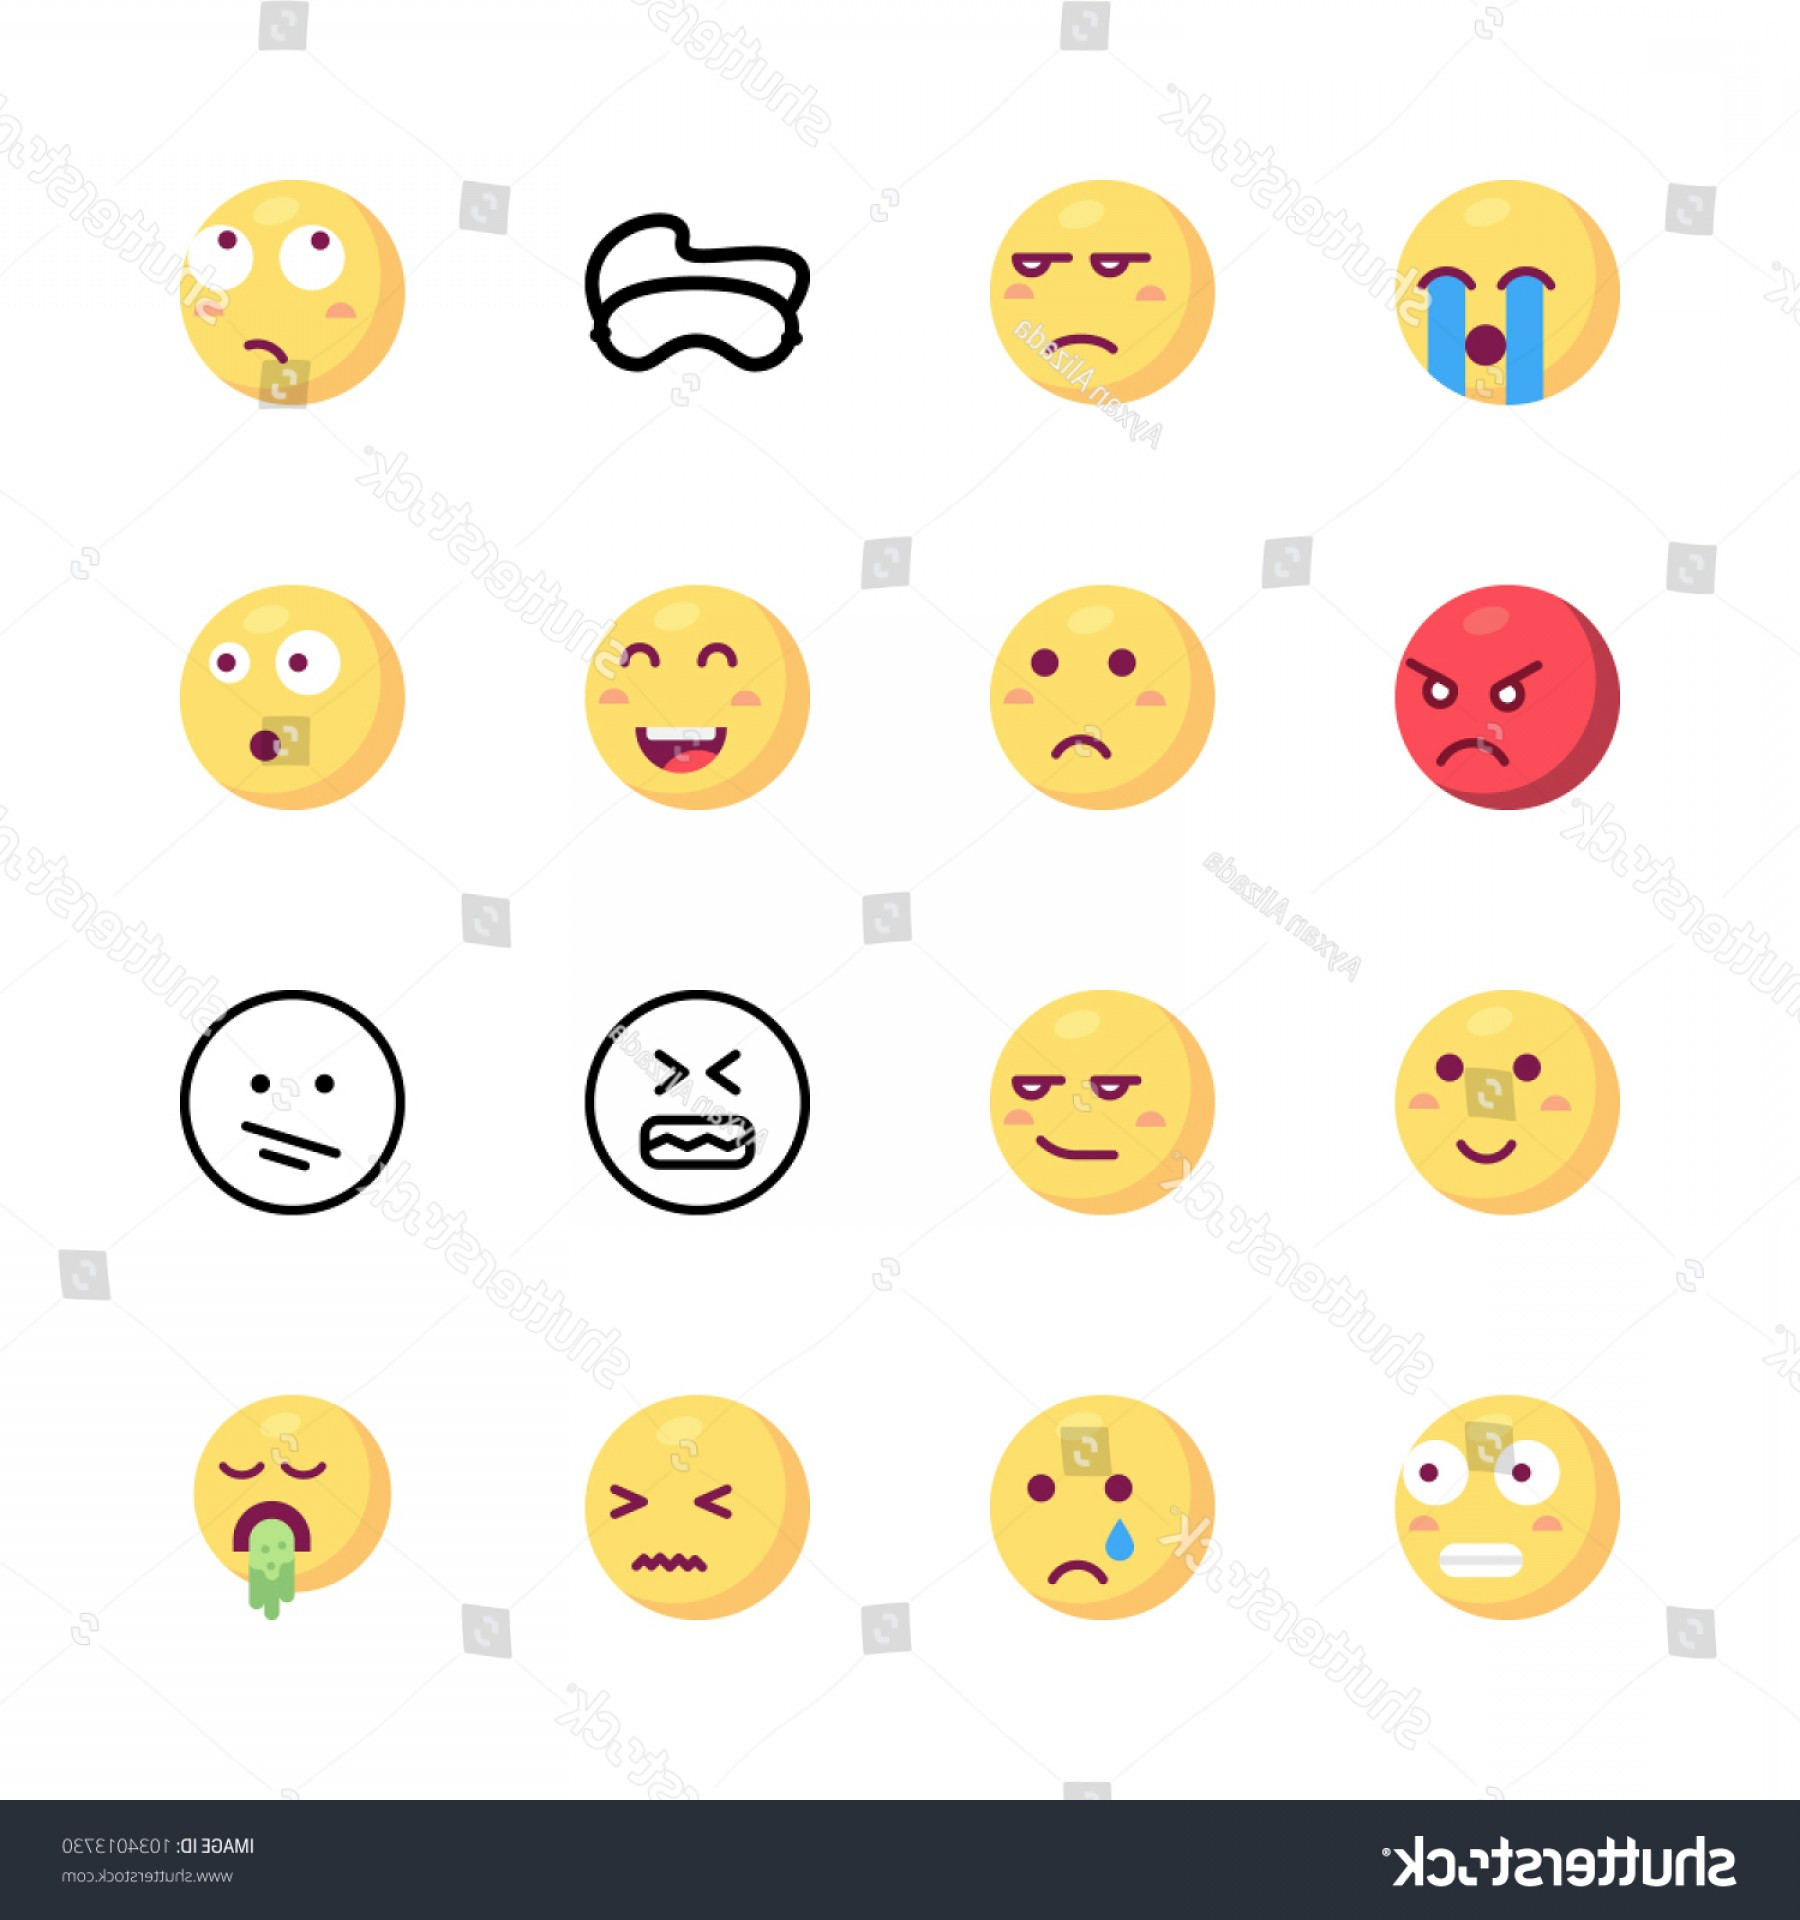 Angry Emoji Vector Icons: Icons Emoji Vector Angry Cry Confused